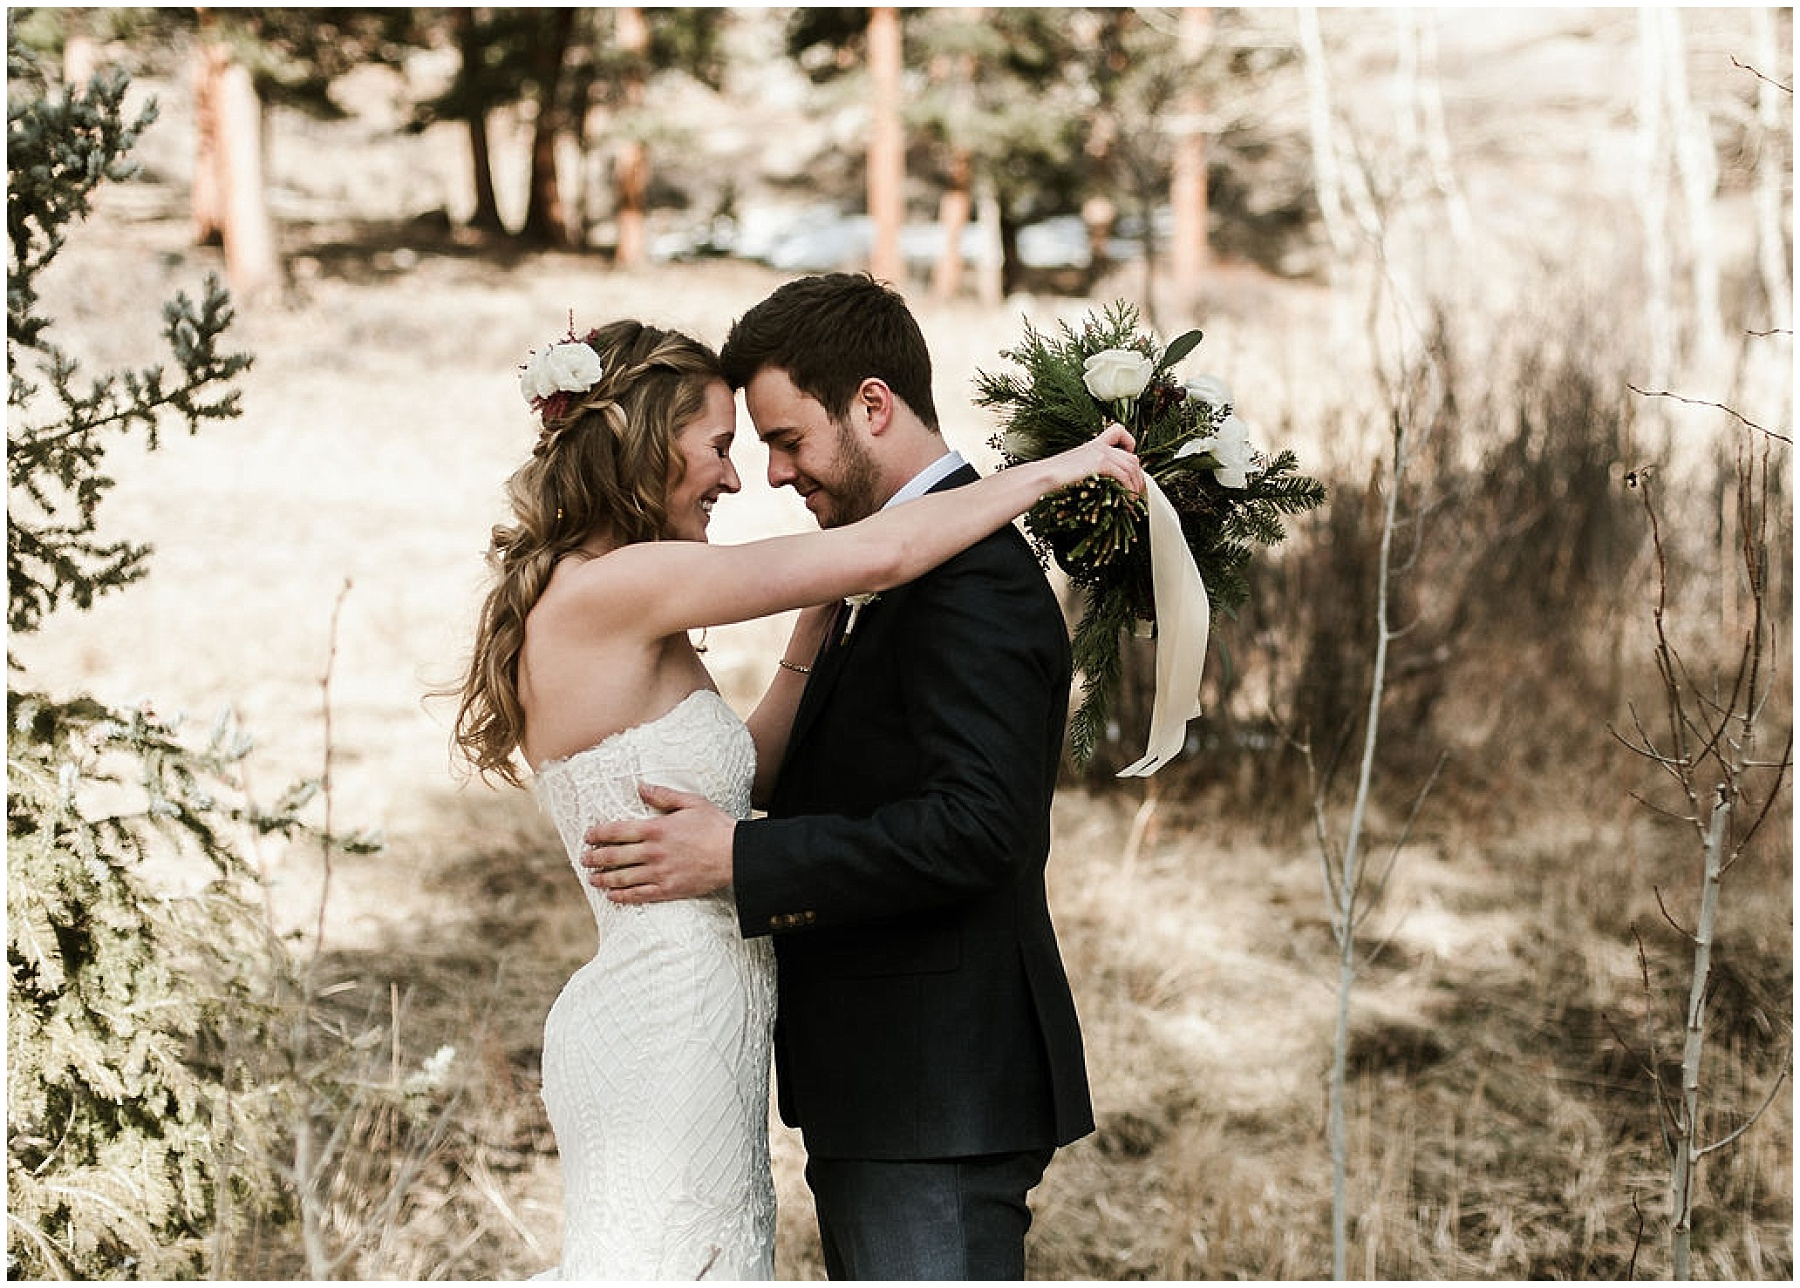 Katesalleyphotography-107_Haley and Dan get married in Estes Park.jpg